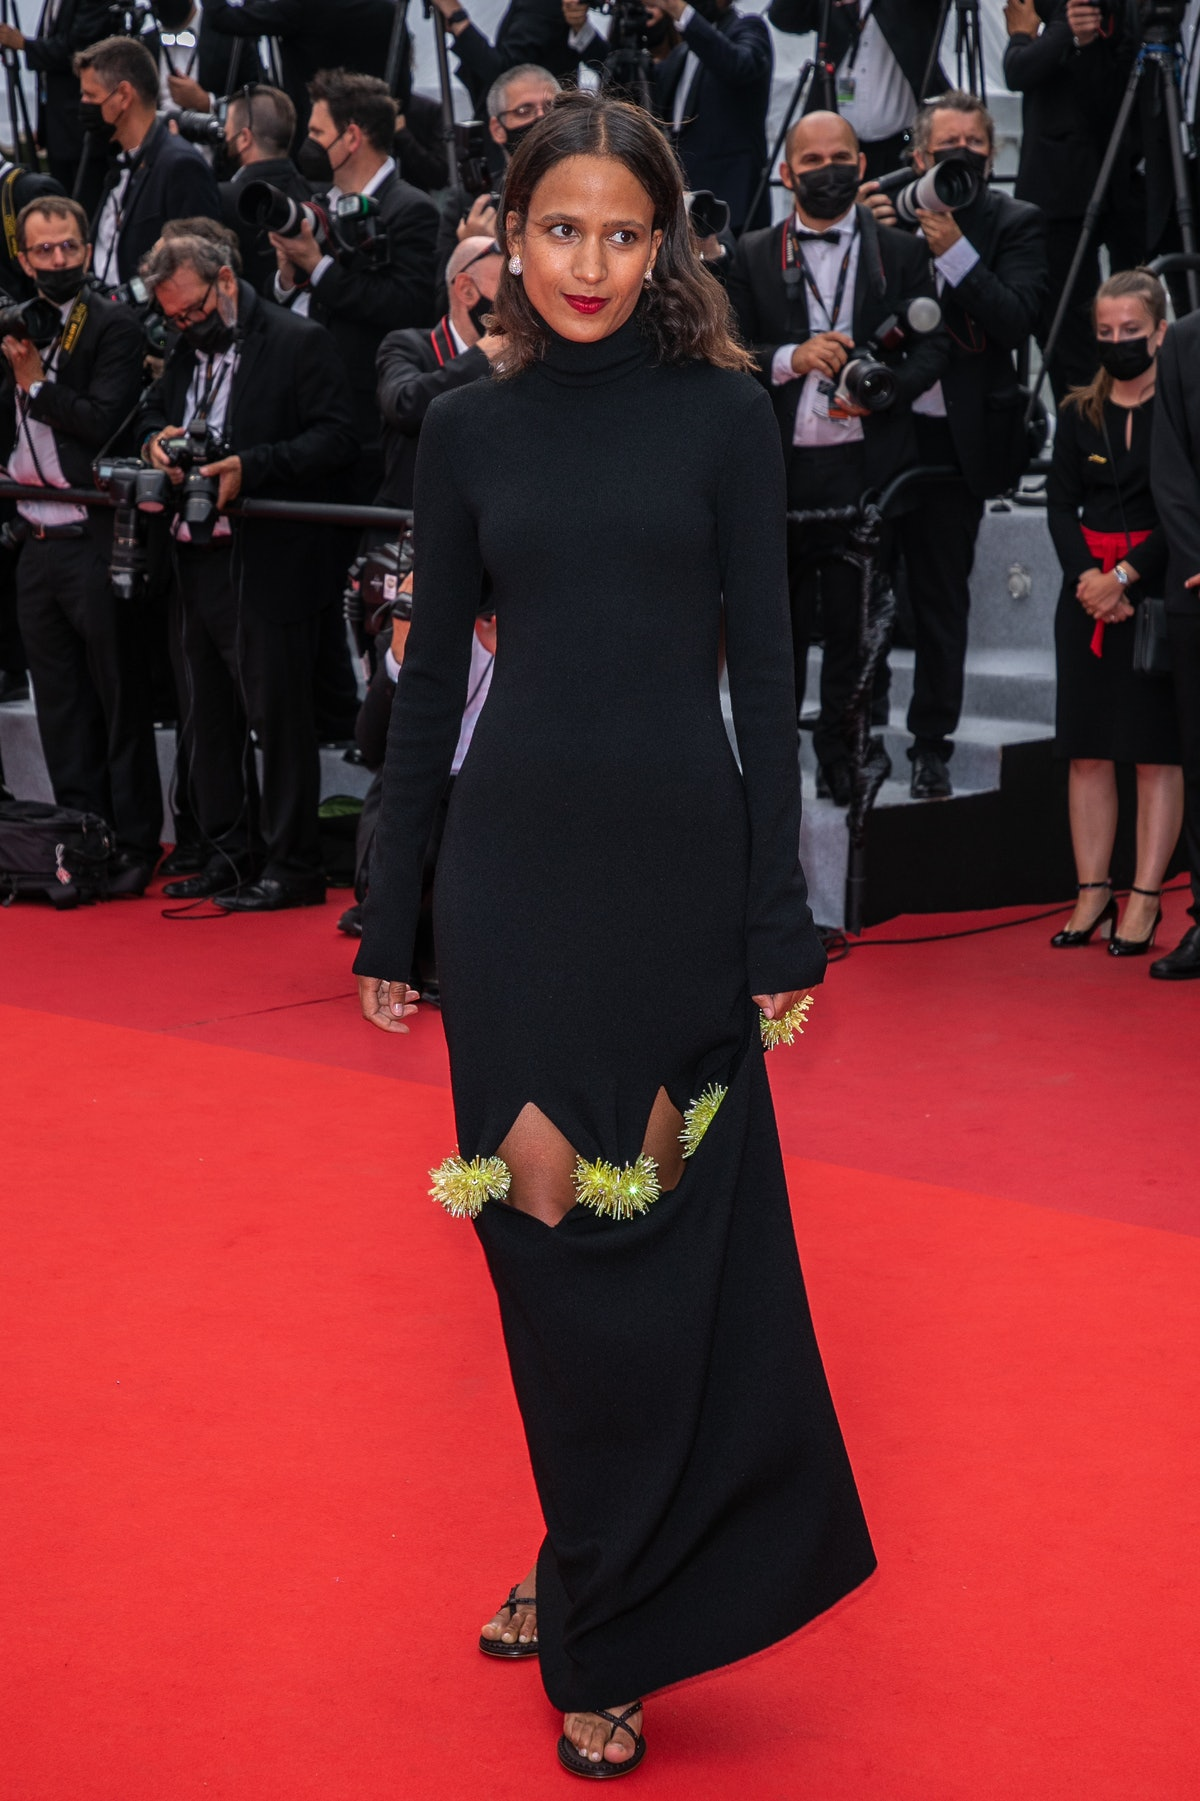 """CANNES, FRANCE - JULY 12: Mati Diop attends the """"The French Dispatch"""" screening during the 74th annual Cannes Film Festival on July 12, 2021 in Cannes, France. (Photo by Marc Piasecki/FilmMagic)"""